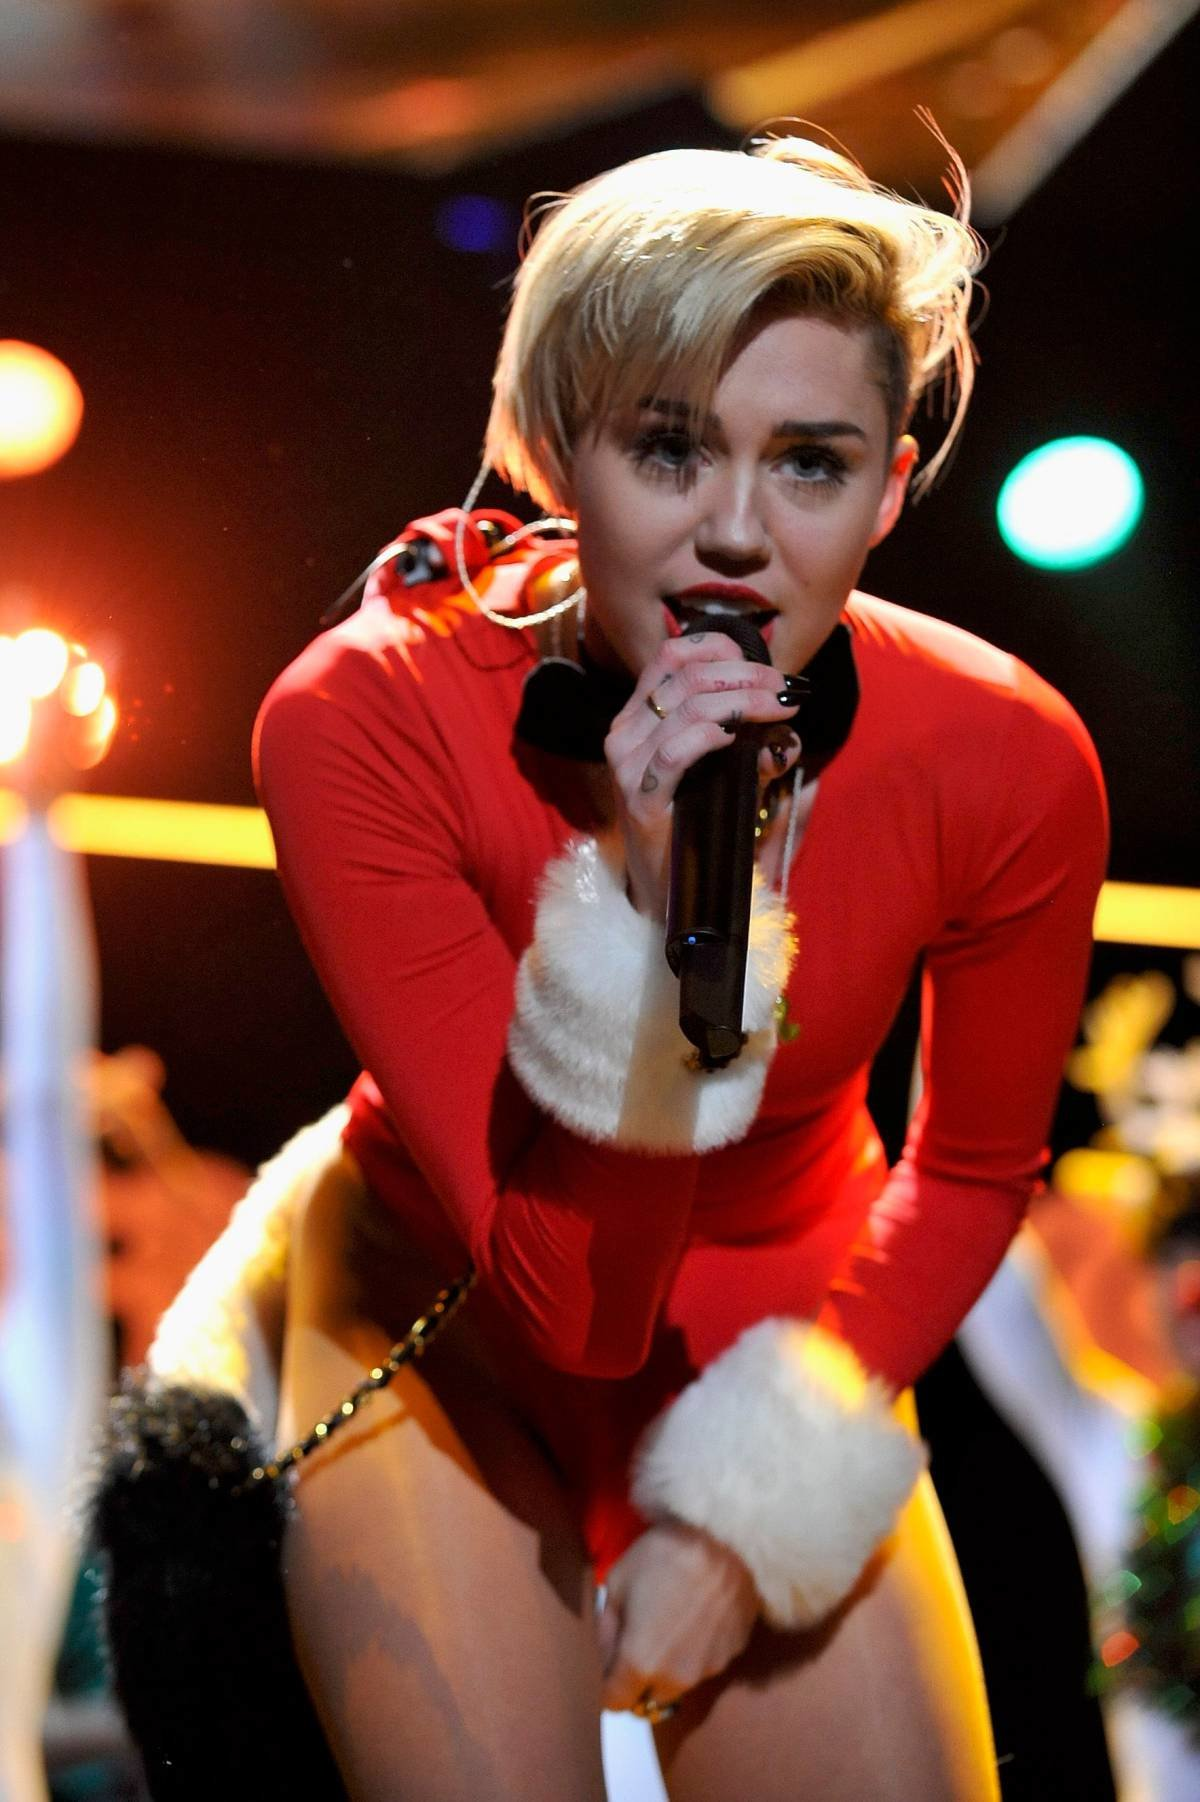 Miley Cyrus  Ethnicity of Celebs  What Nationality